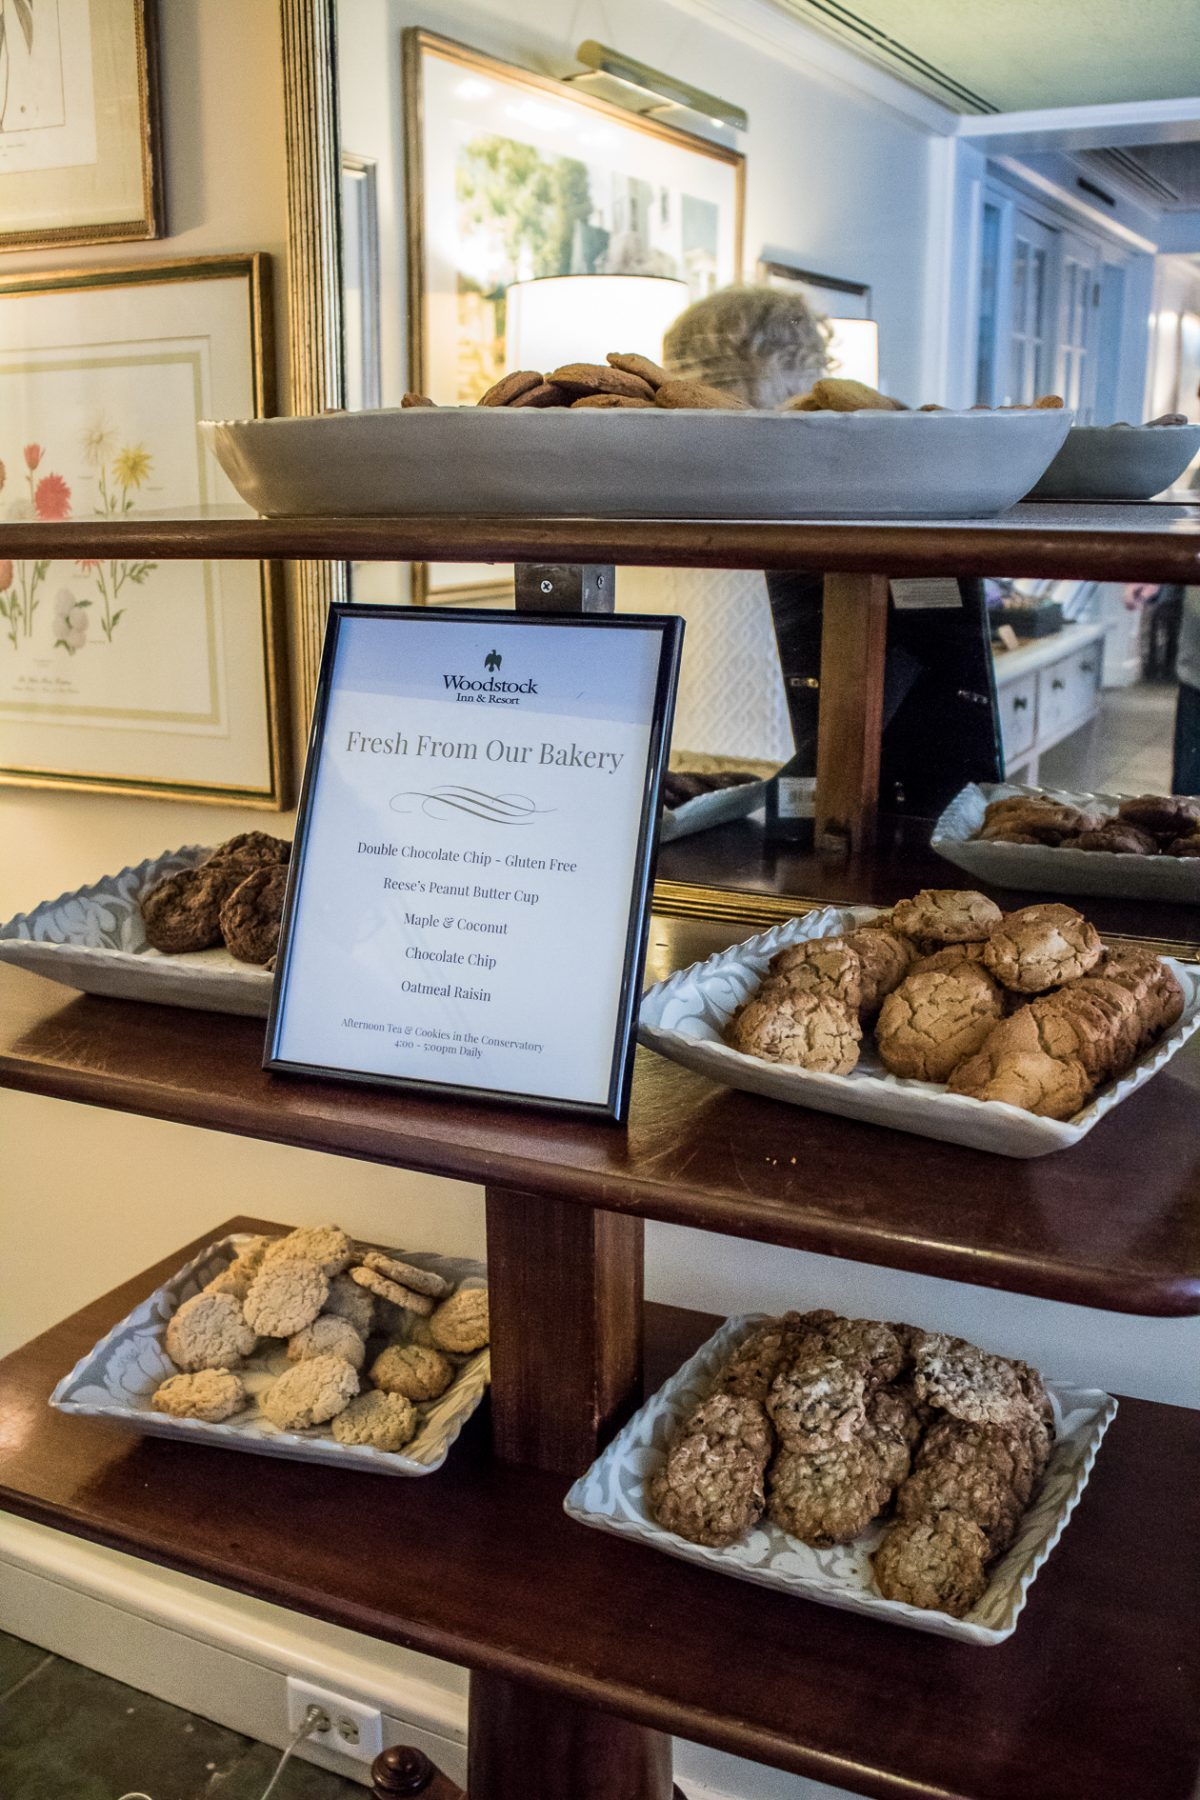 Fresh Baked Cookies Displayed on Shelves at Woodstock Inn and Resort in Woodstock Vermont